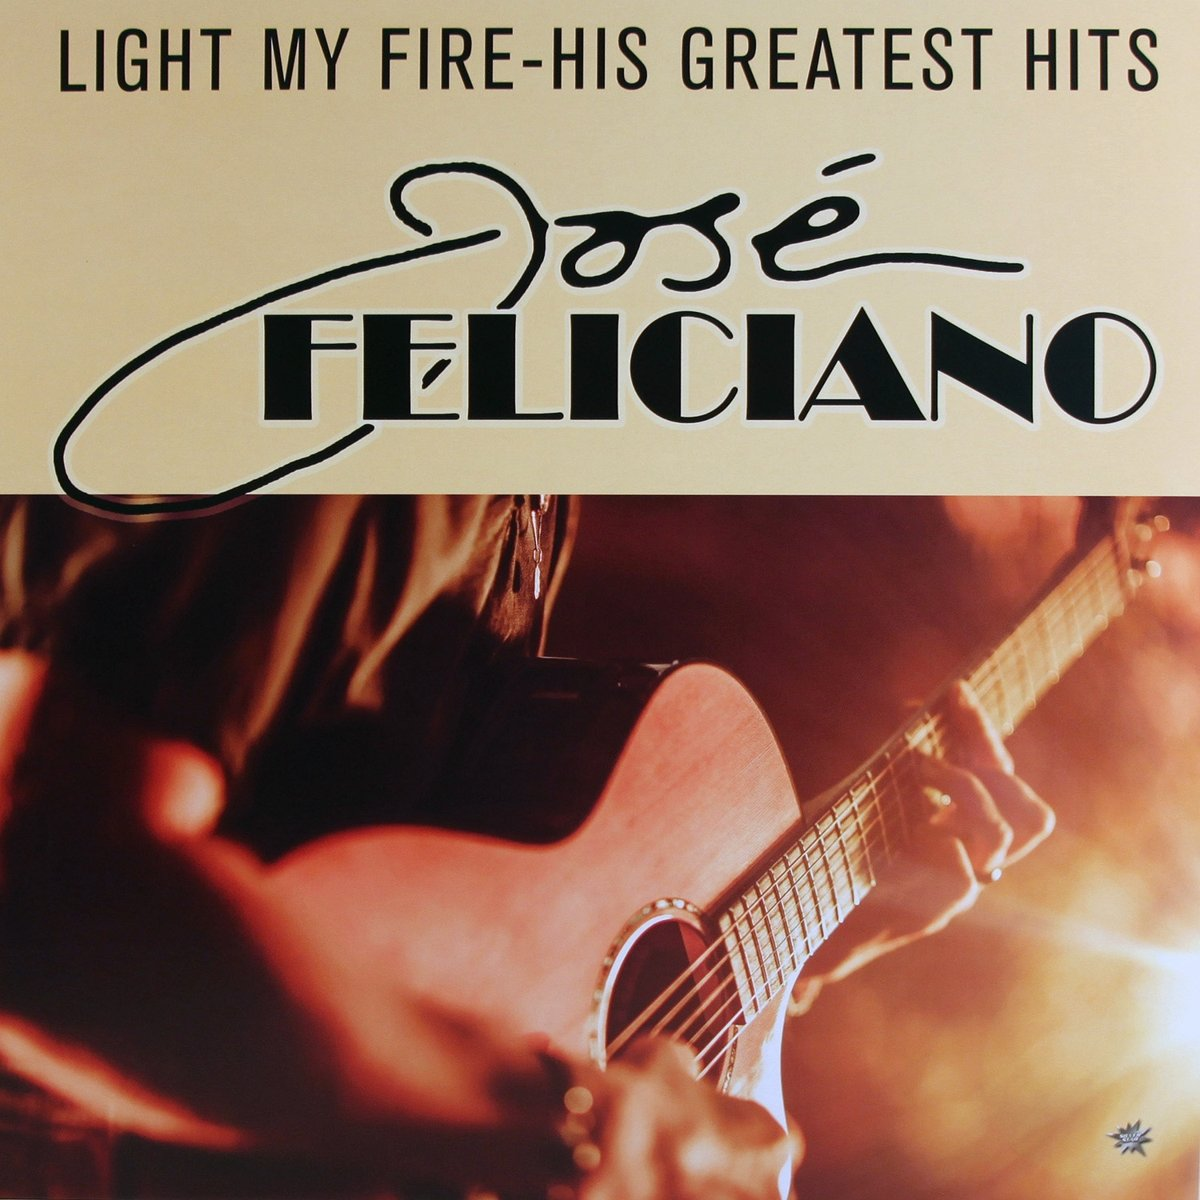 Хосе Фелициано Jose Feliciano. Light My Fire - His Greatest Hits (LP) jools holland jose feliciano jools holland jose feliciano as you see me now 180 gr